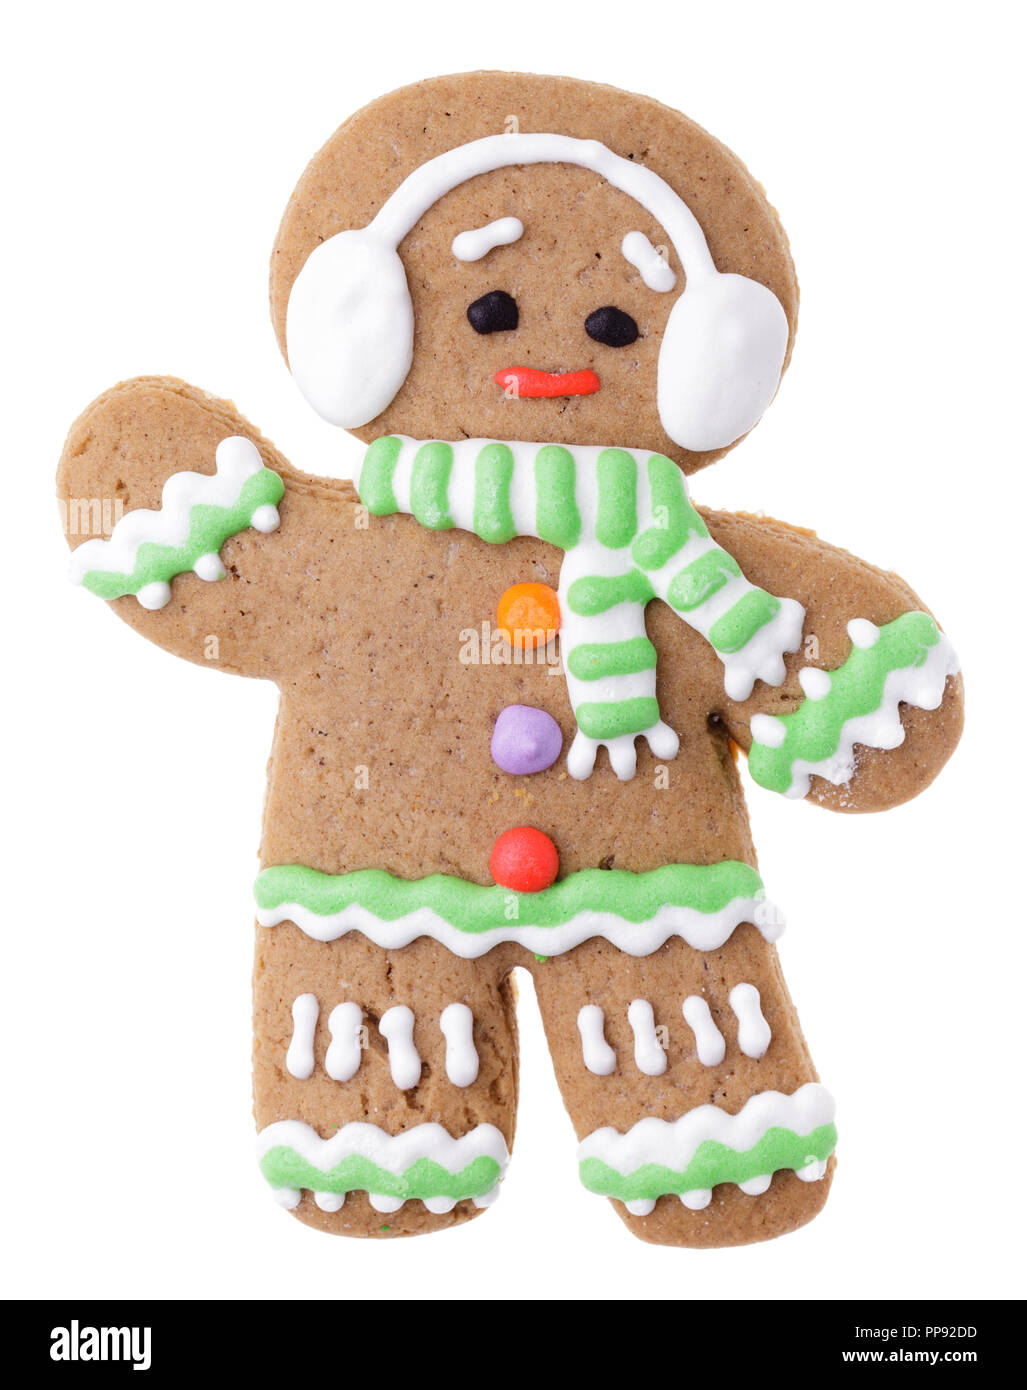 Iced Christmas Gingerbread Man Sugar Cookie Isolated On White